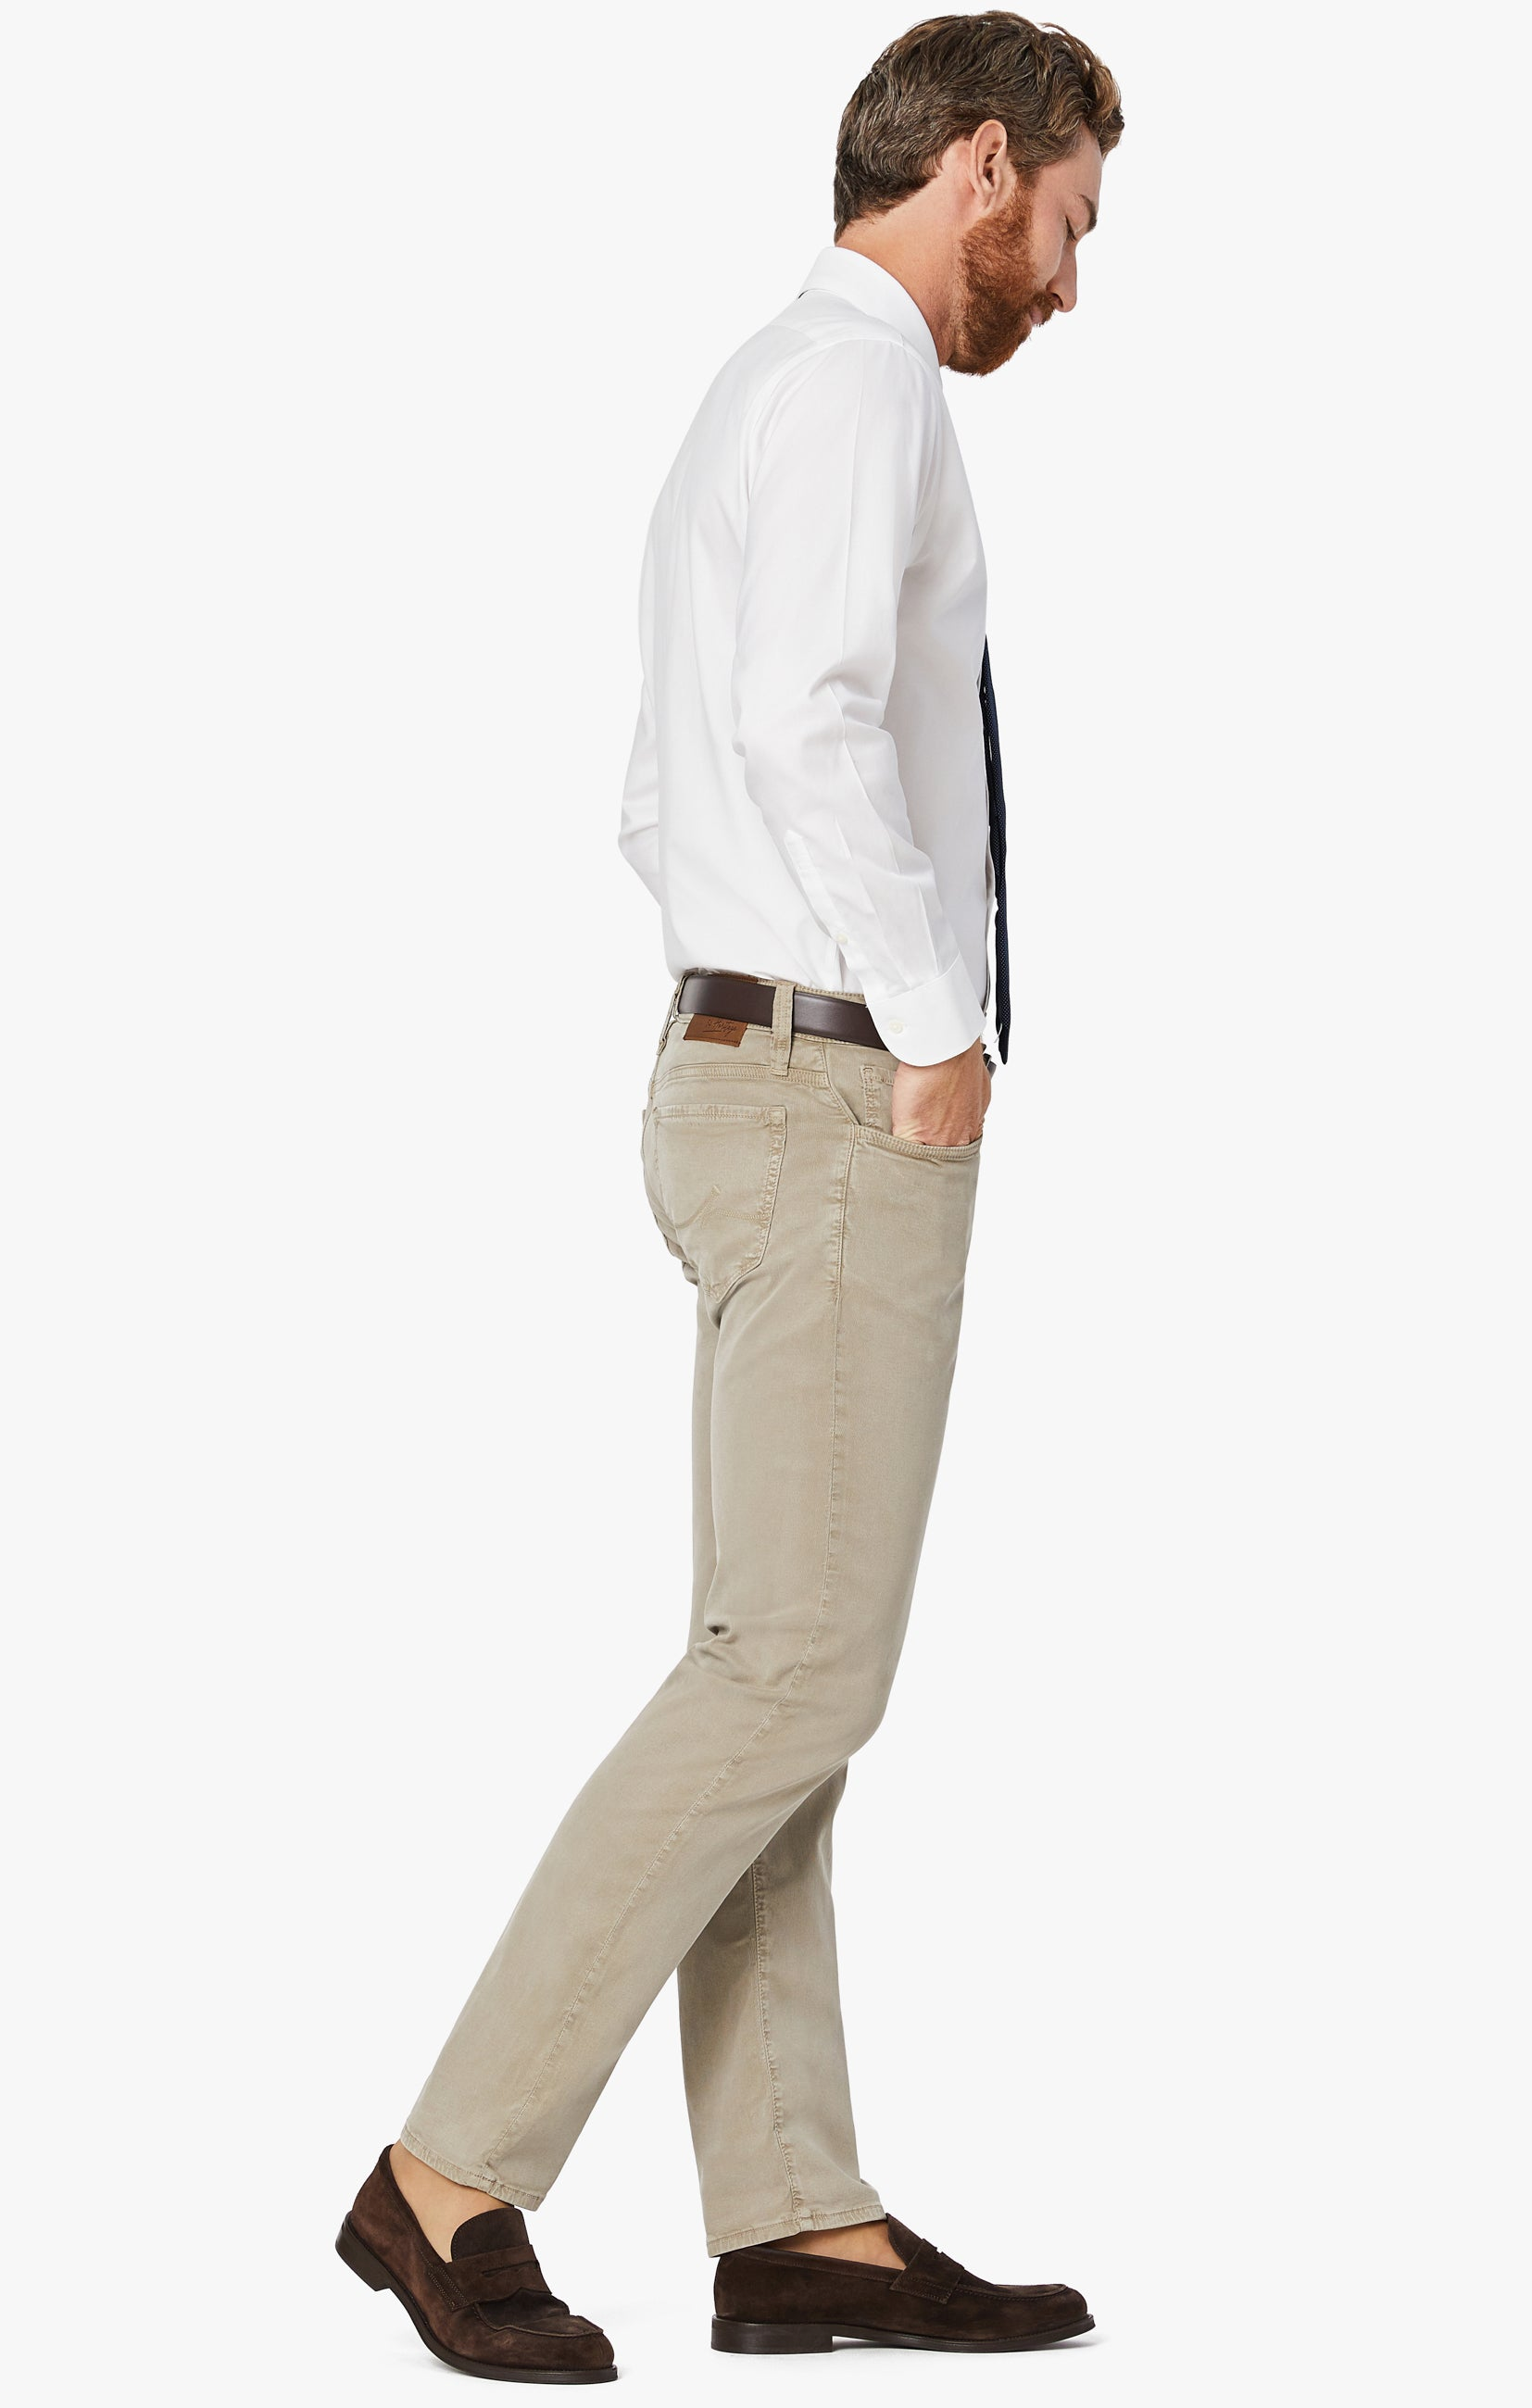 Courage Straight Leg Pants In Mushroom Soft Touch Image 1